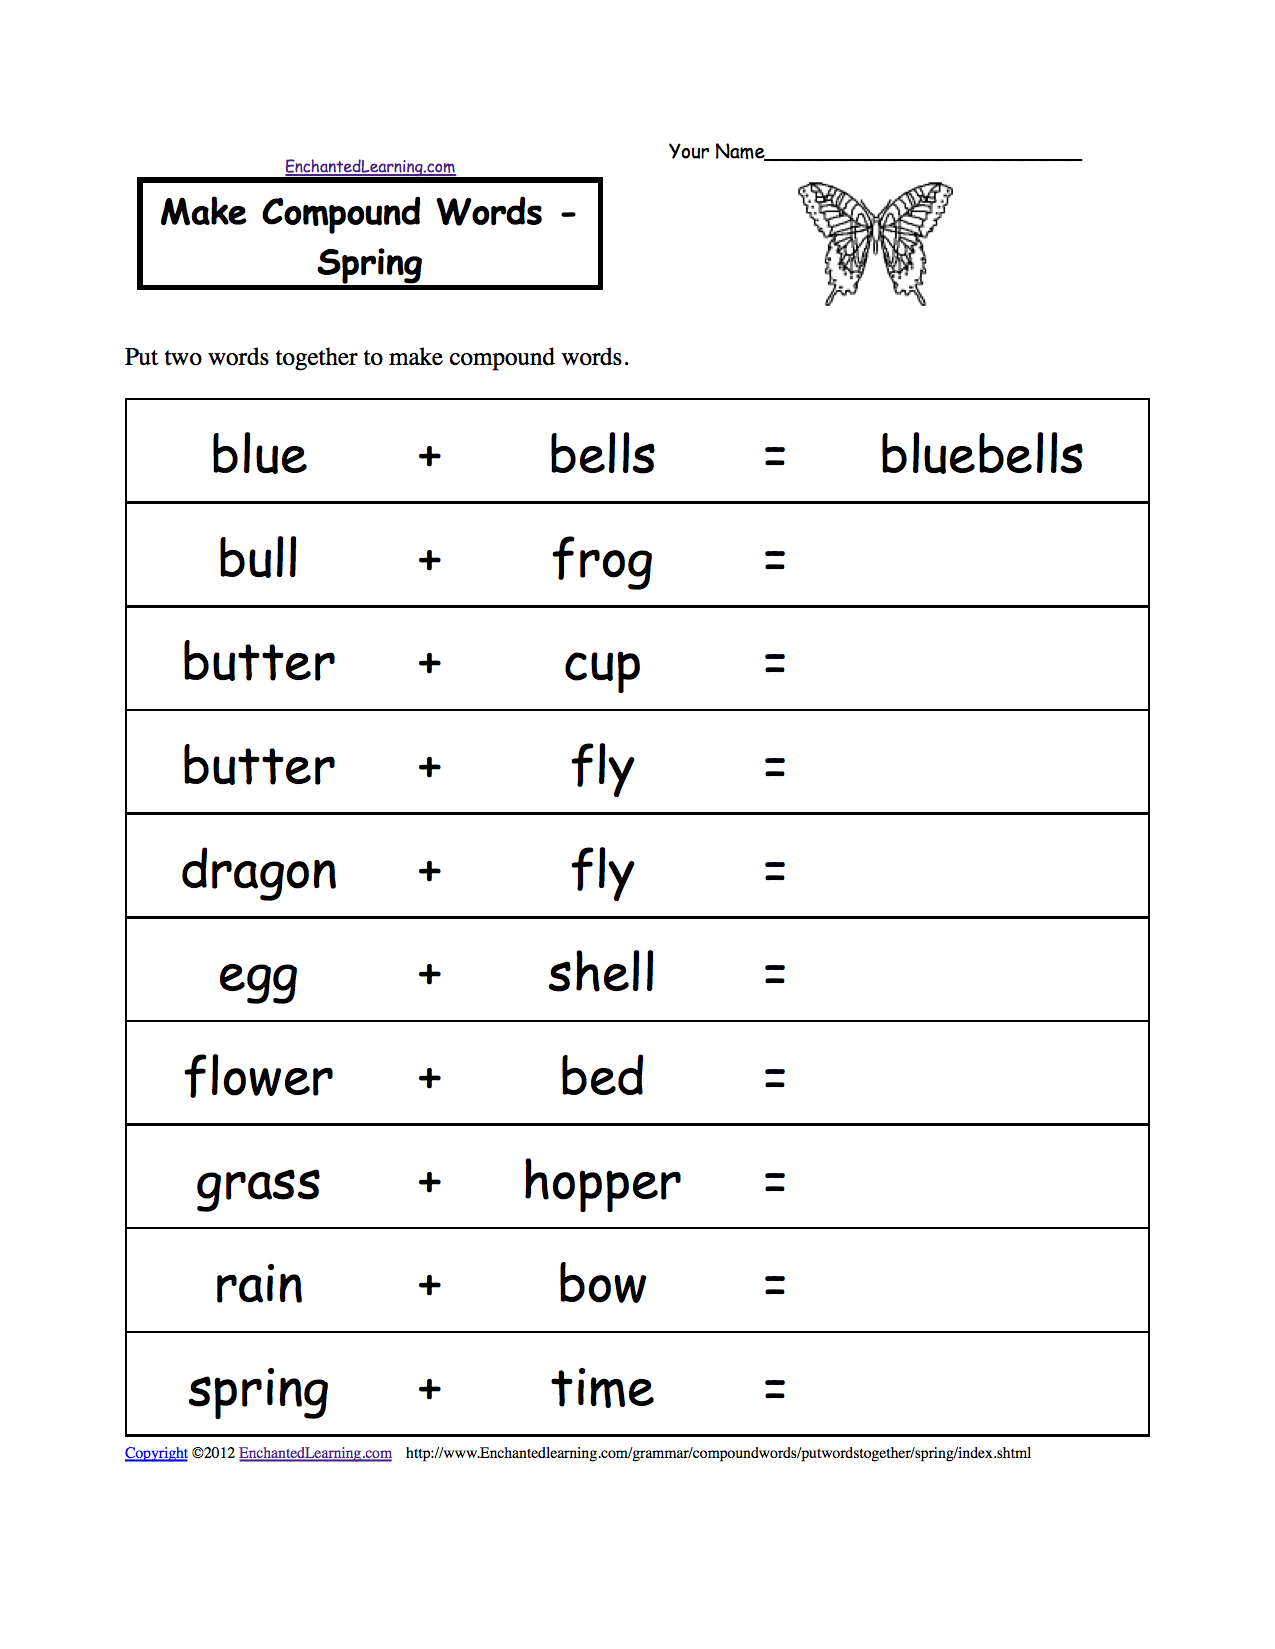 Make Compound Words, Printable Worksheets. EnchantedLearning.com